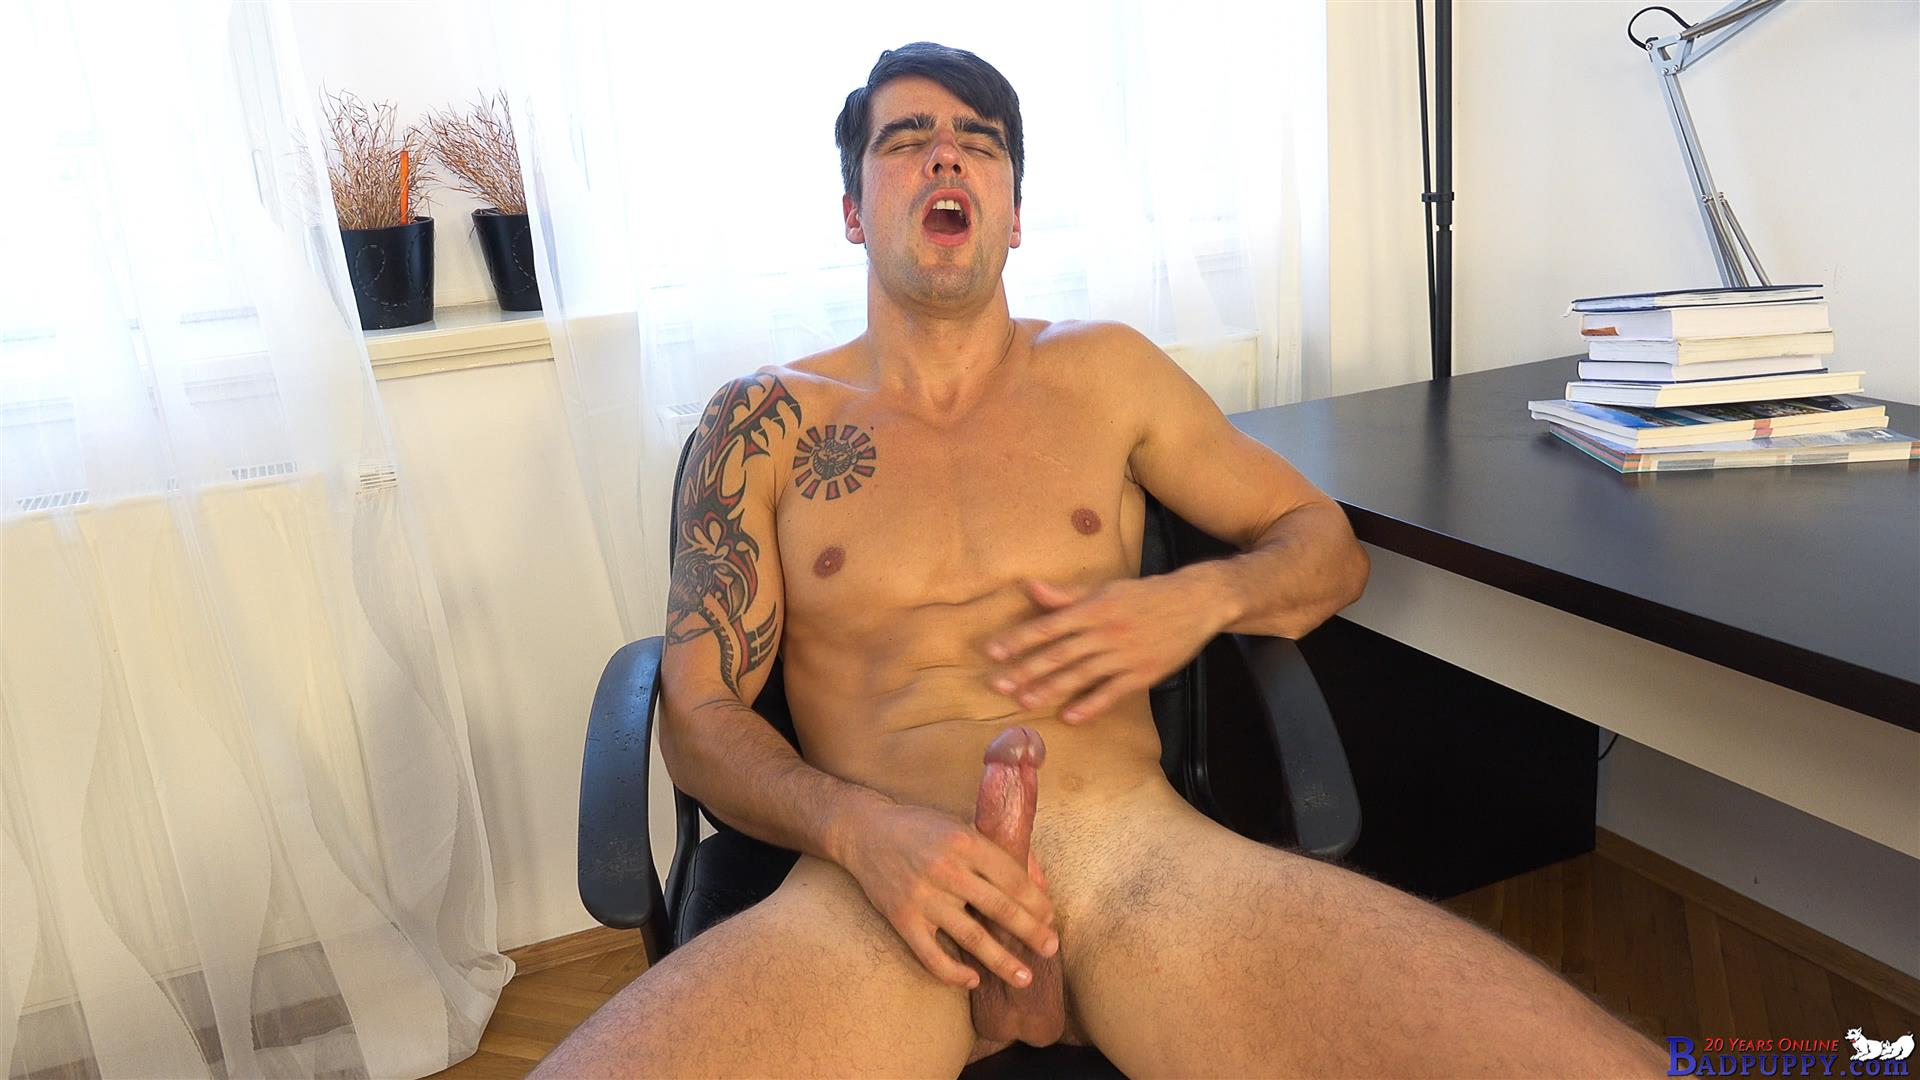 Badpuppy-Milan-Pis-Straight-Guy-With-Big-Uncut-Cock-Masturbating-Amateur-Gay-Porn-15 Straight Italian Banker Masturbating His Big Uncut Cock